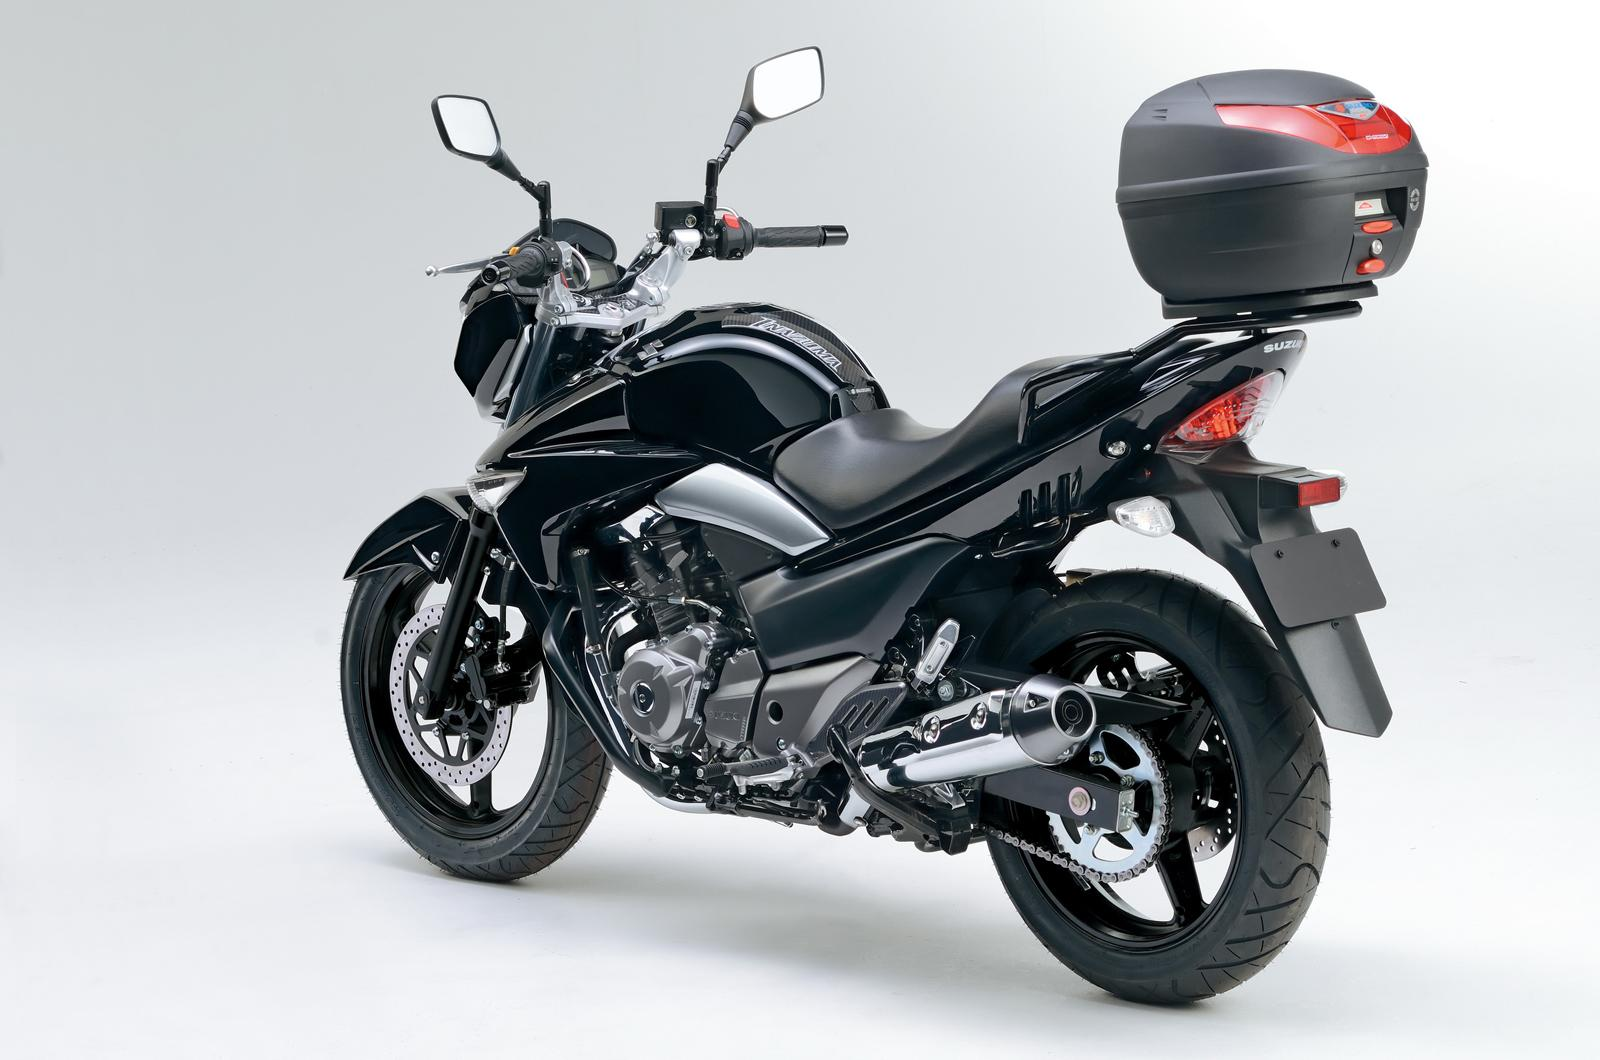 2014 suzuki inazuma 250 moto zombdrive com. Black Bedroom Furniture Sets. Home Design Ideas